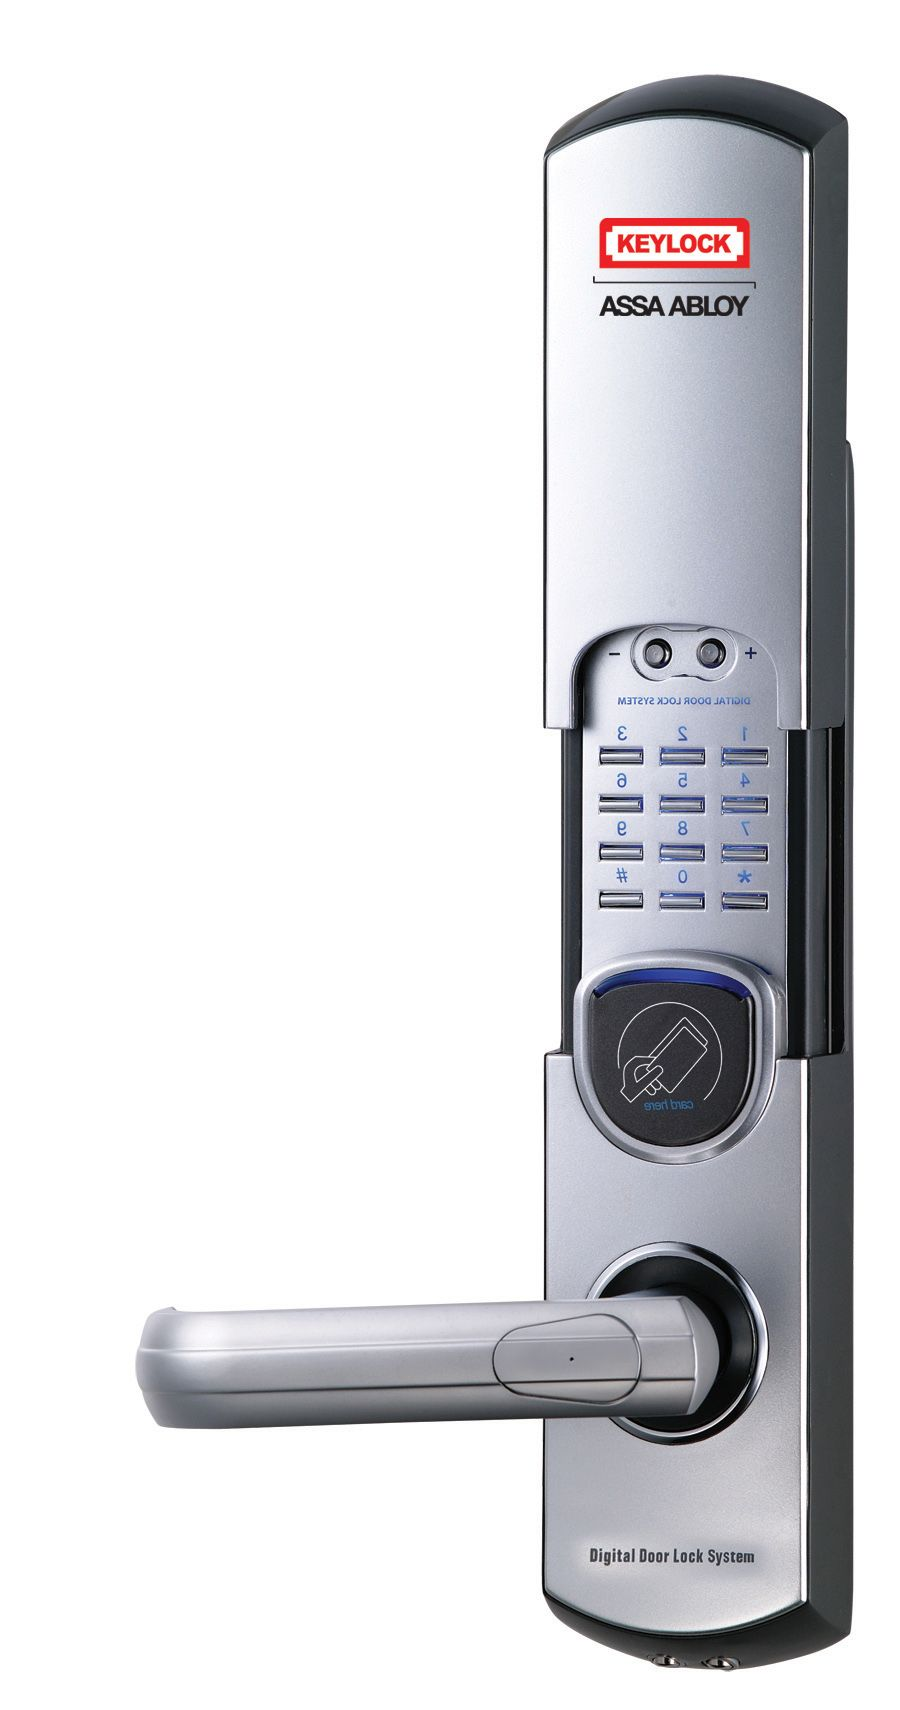 Electronic Security Door Lock With Smart Touch Screen And Digital Code Keypad For Homes Hotels Etc Door Lock Security Security Door Keypad Deadbolt